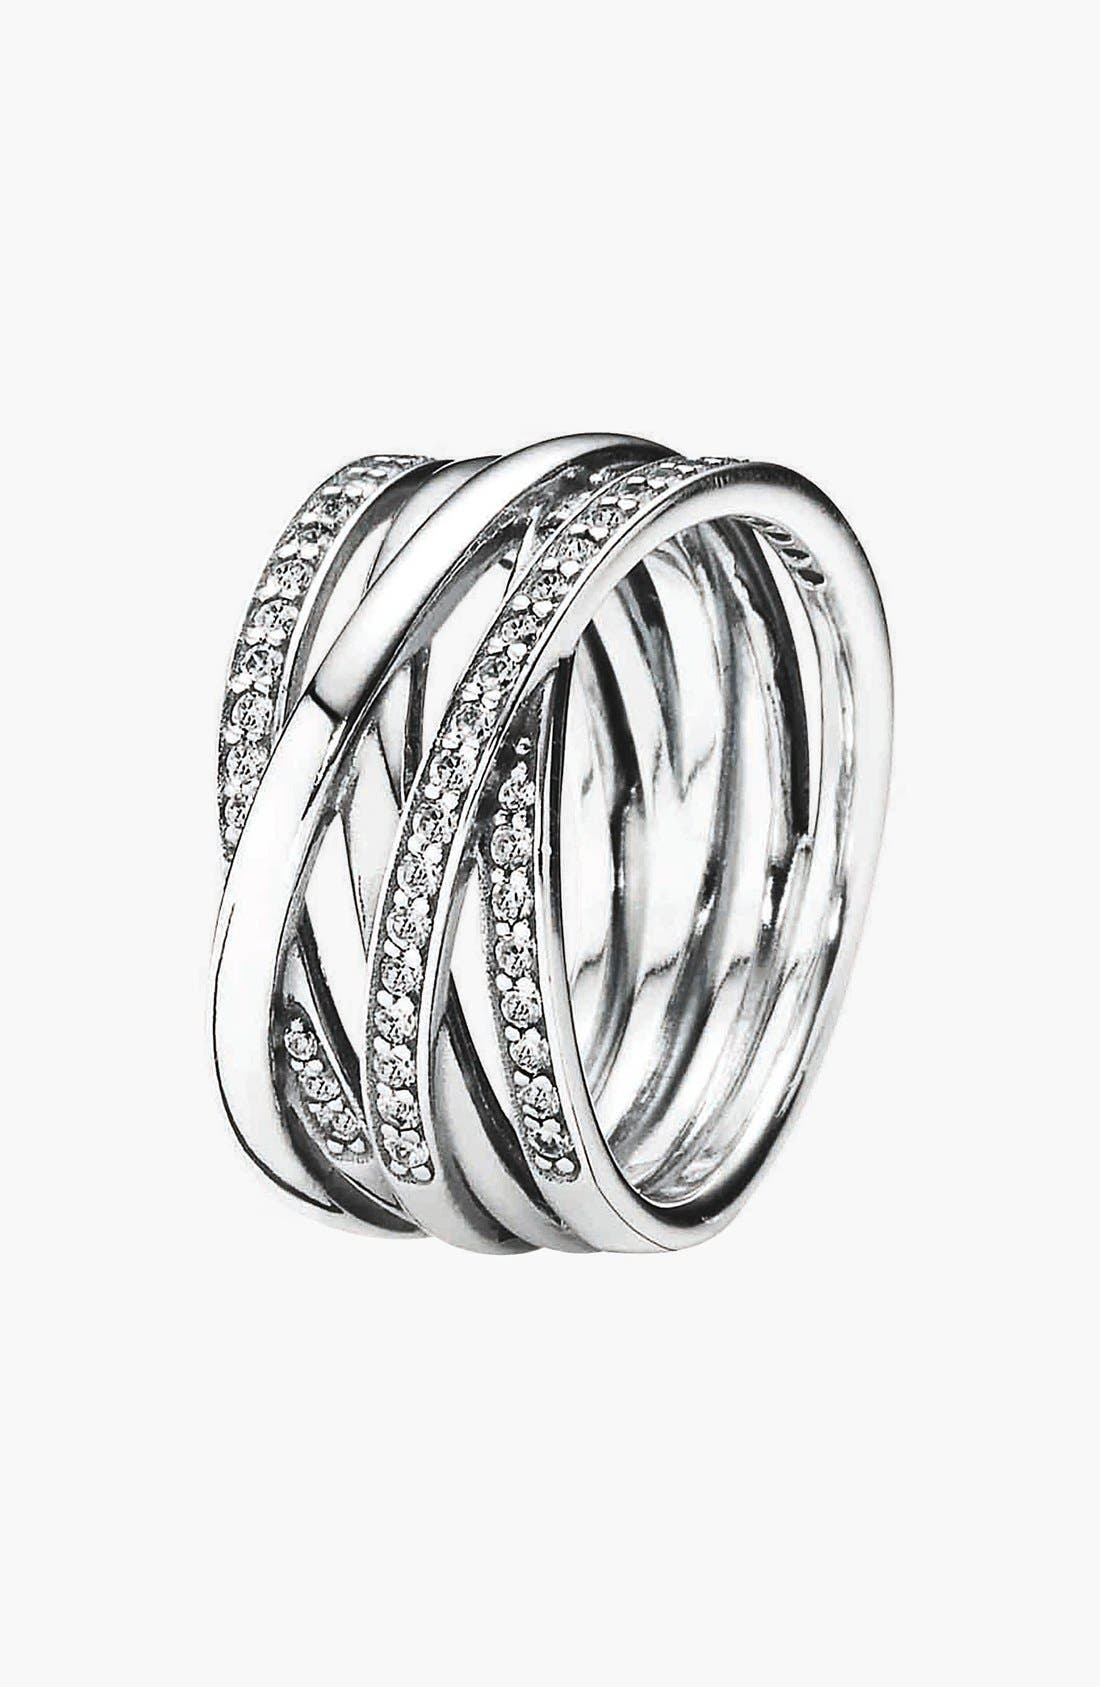 Alternate Image 1 Selected - PANDORA 'Entwined' Stack Ring